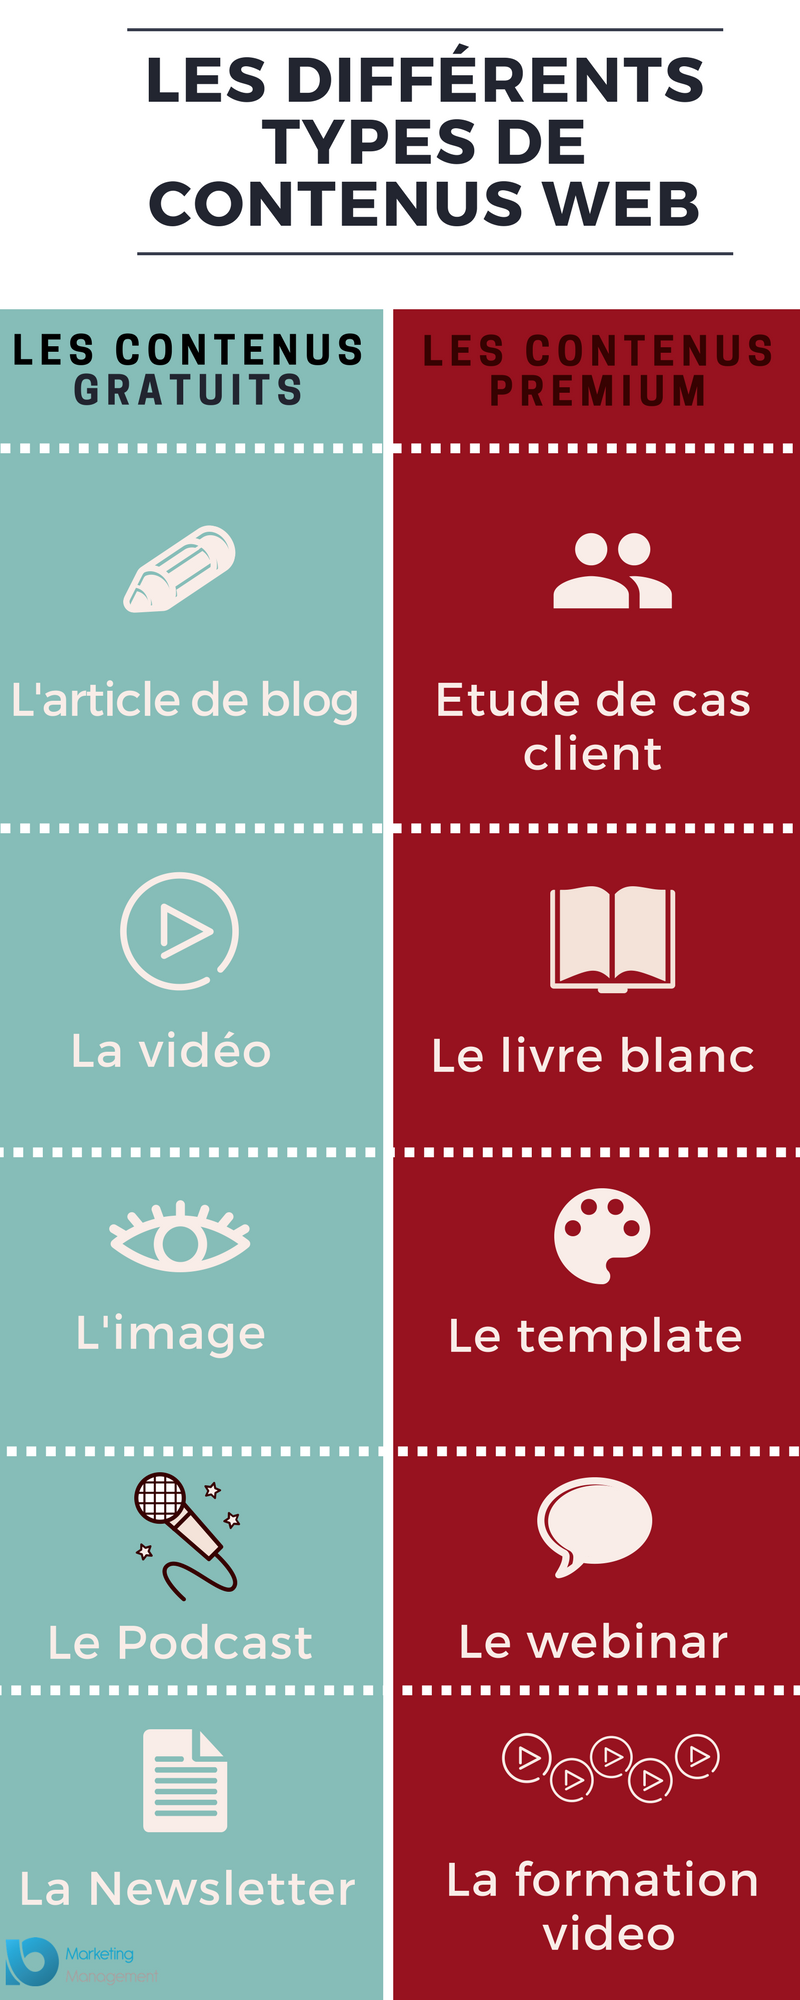 contenu web infographie Marketing Management Io